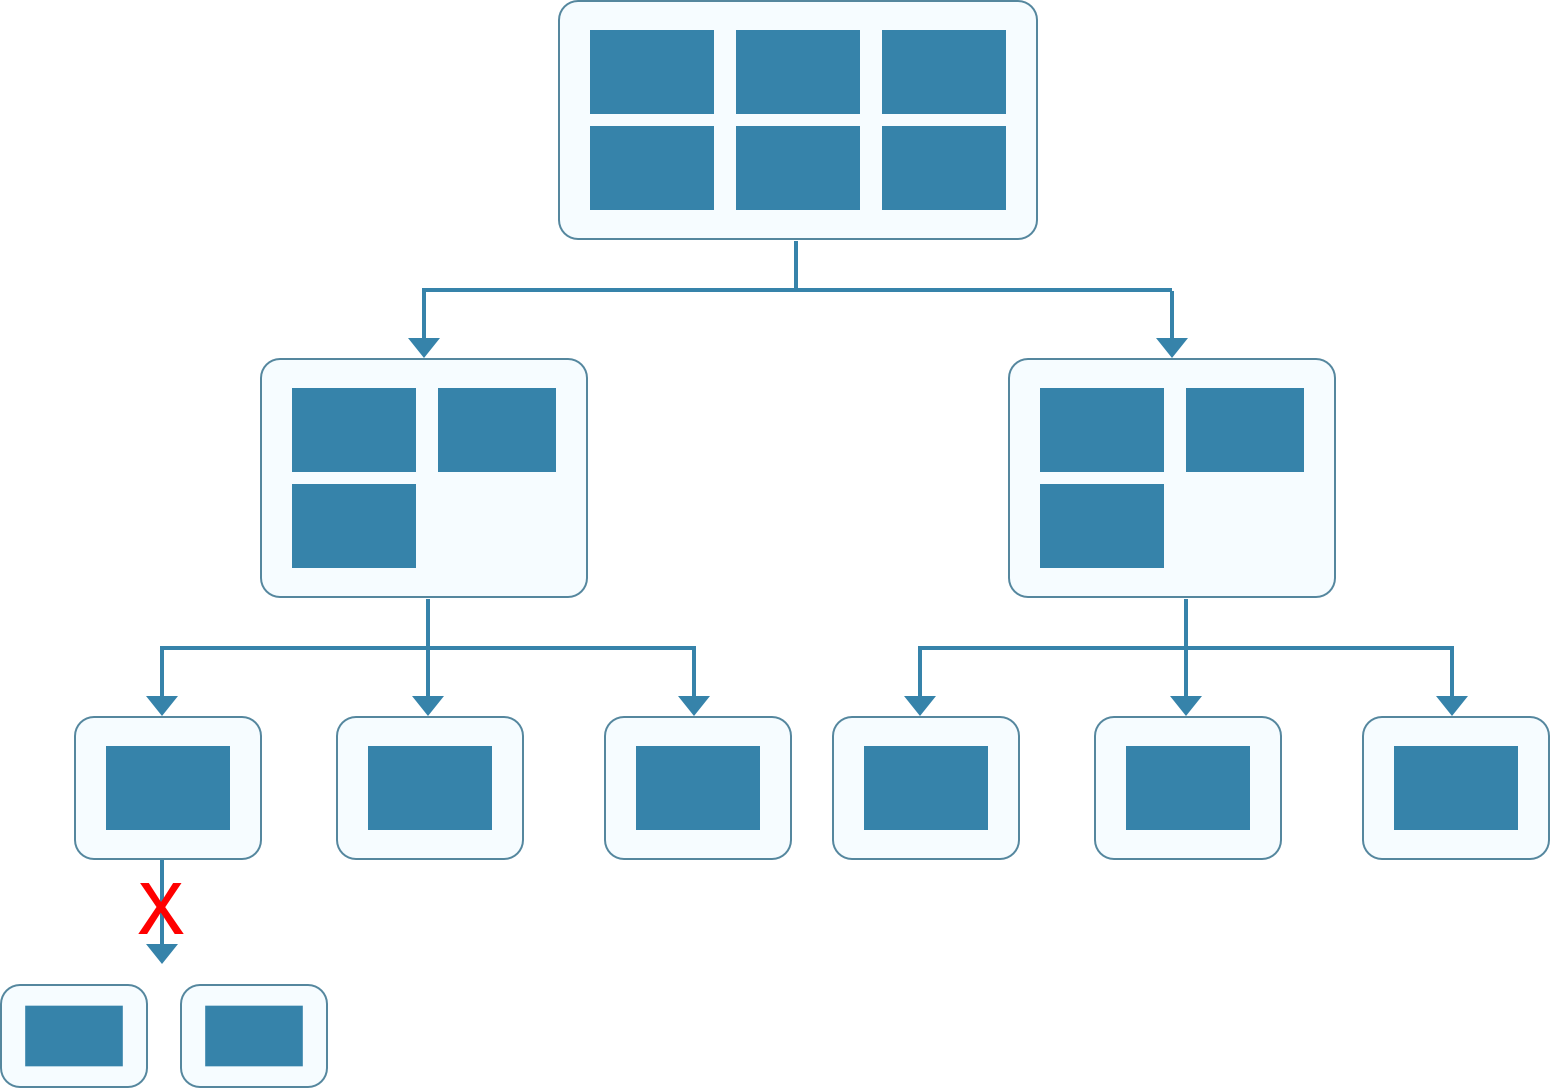 Partition distribution with the increase in the number of nodes